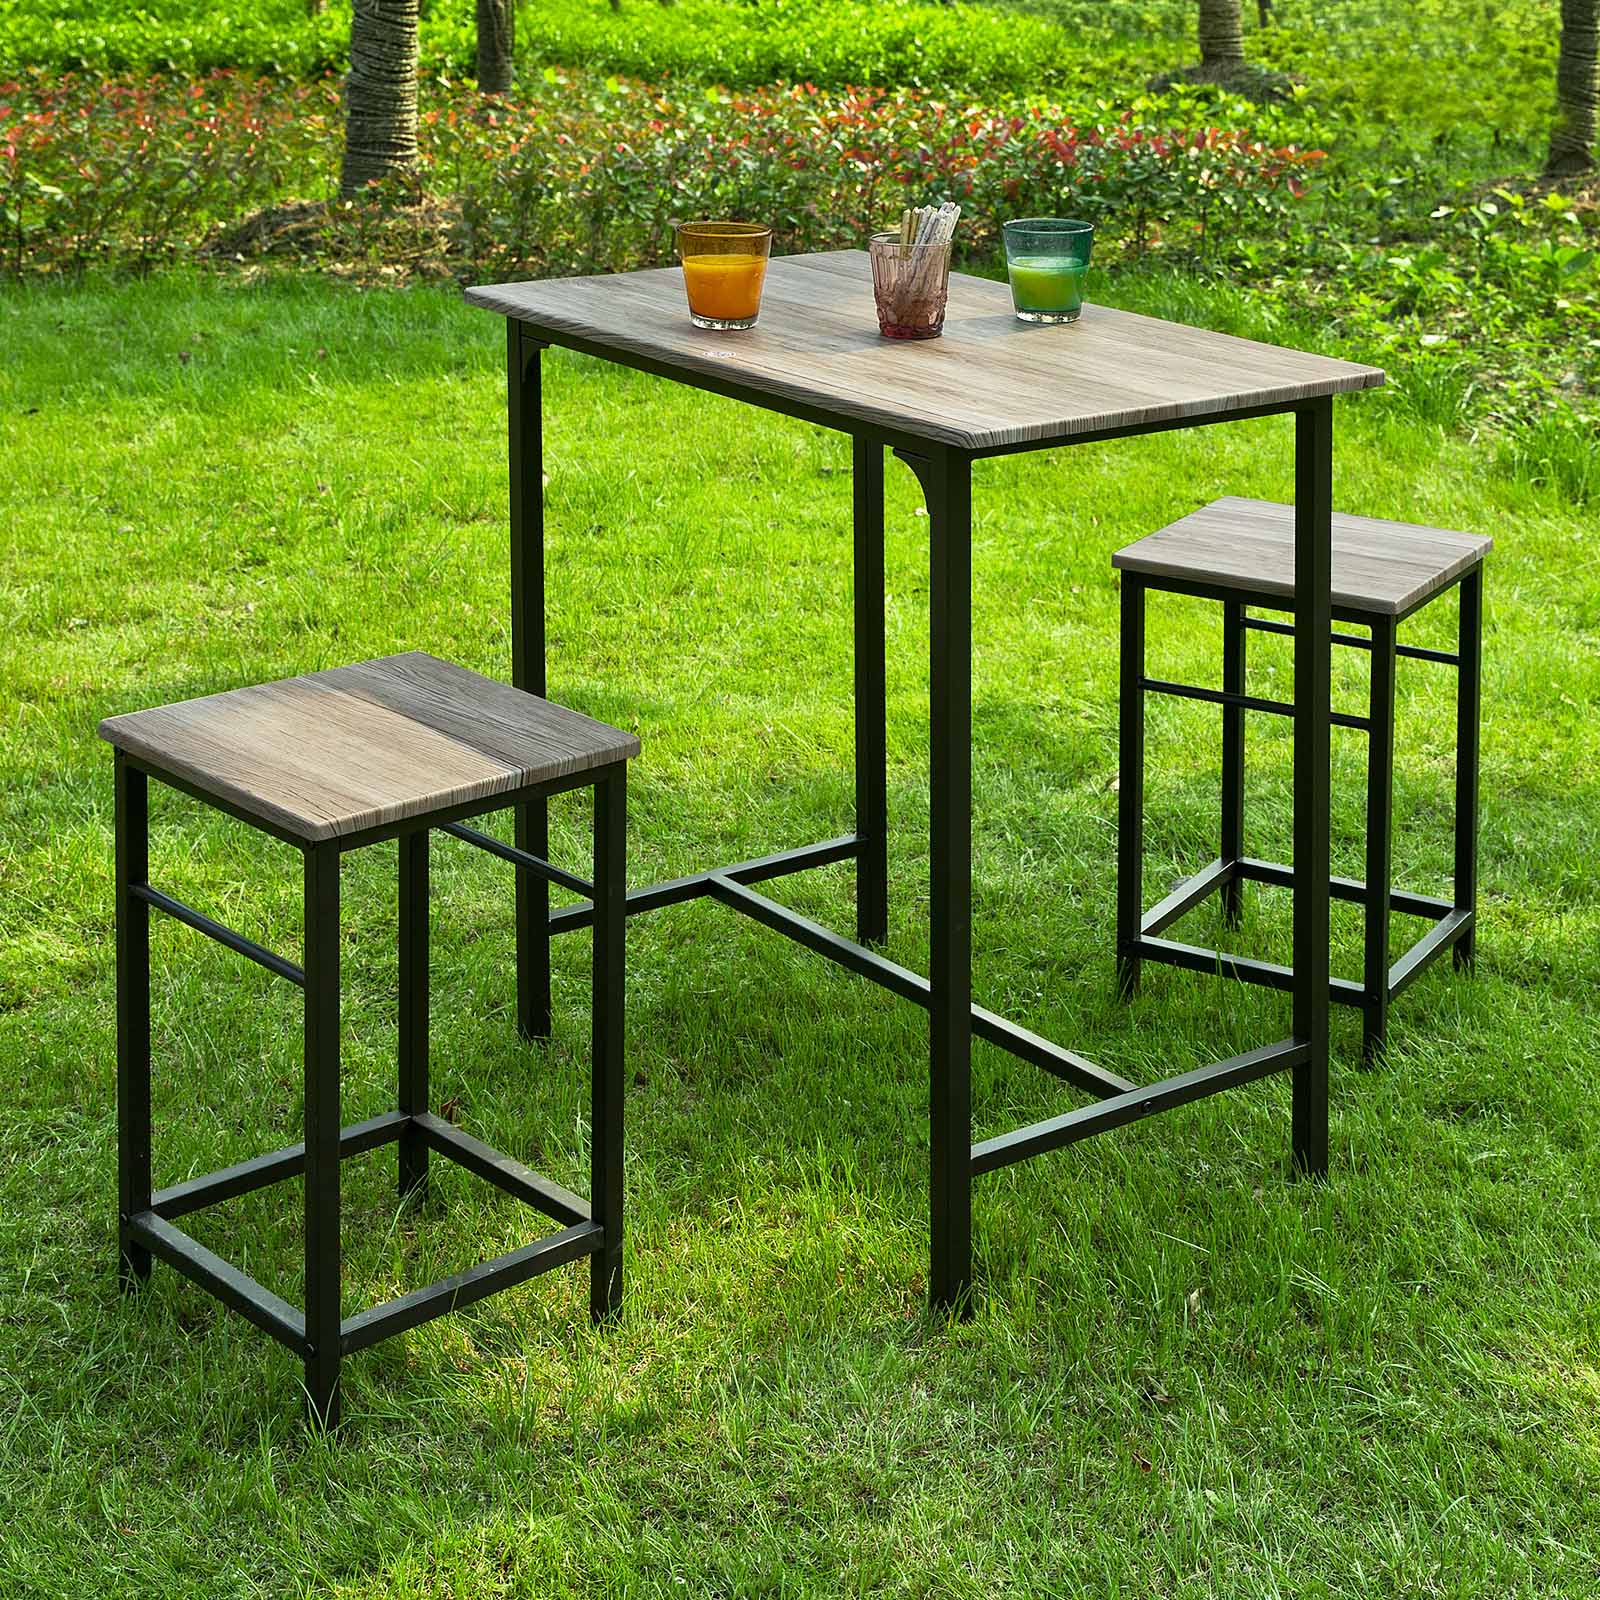 Kitchen Table And Chairs Homebase: Haotiangroup: Haotian Sling High Bistro Set ,Home Kitchen